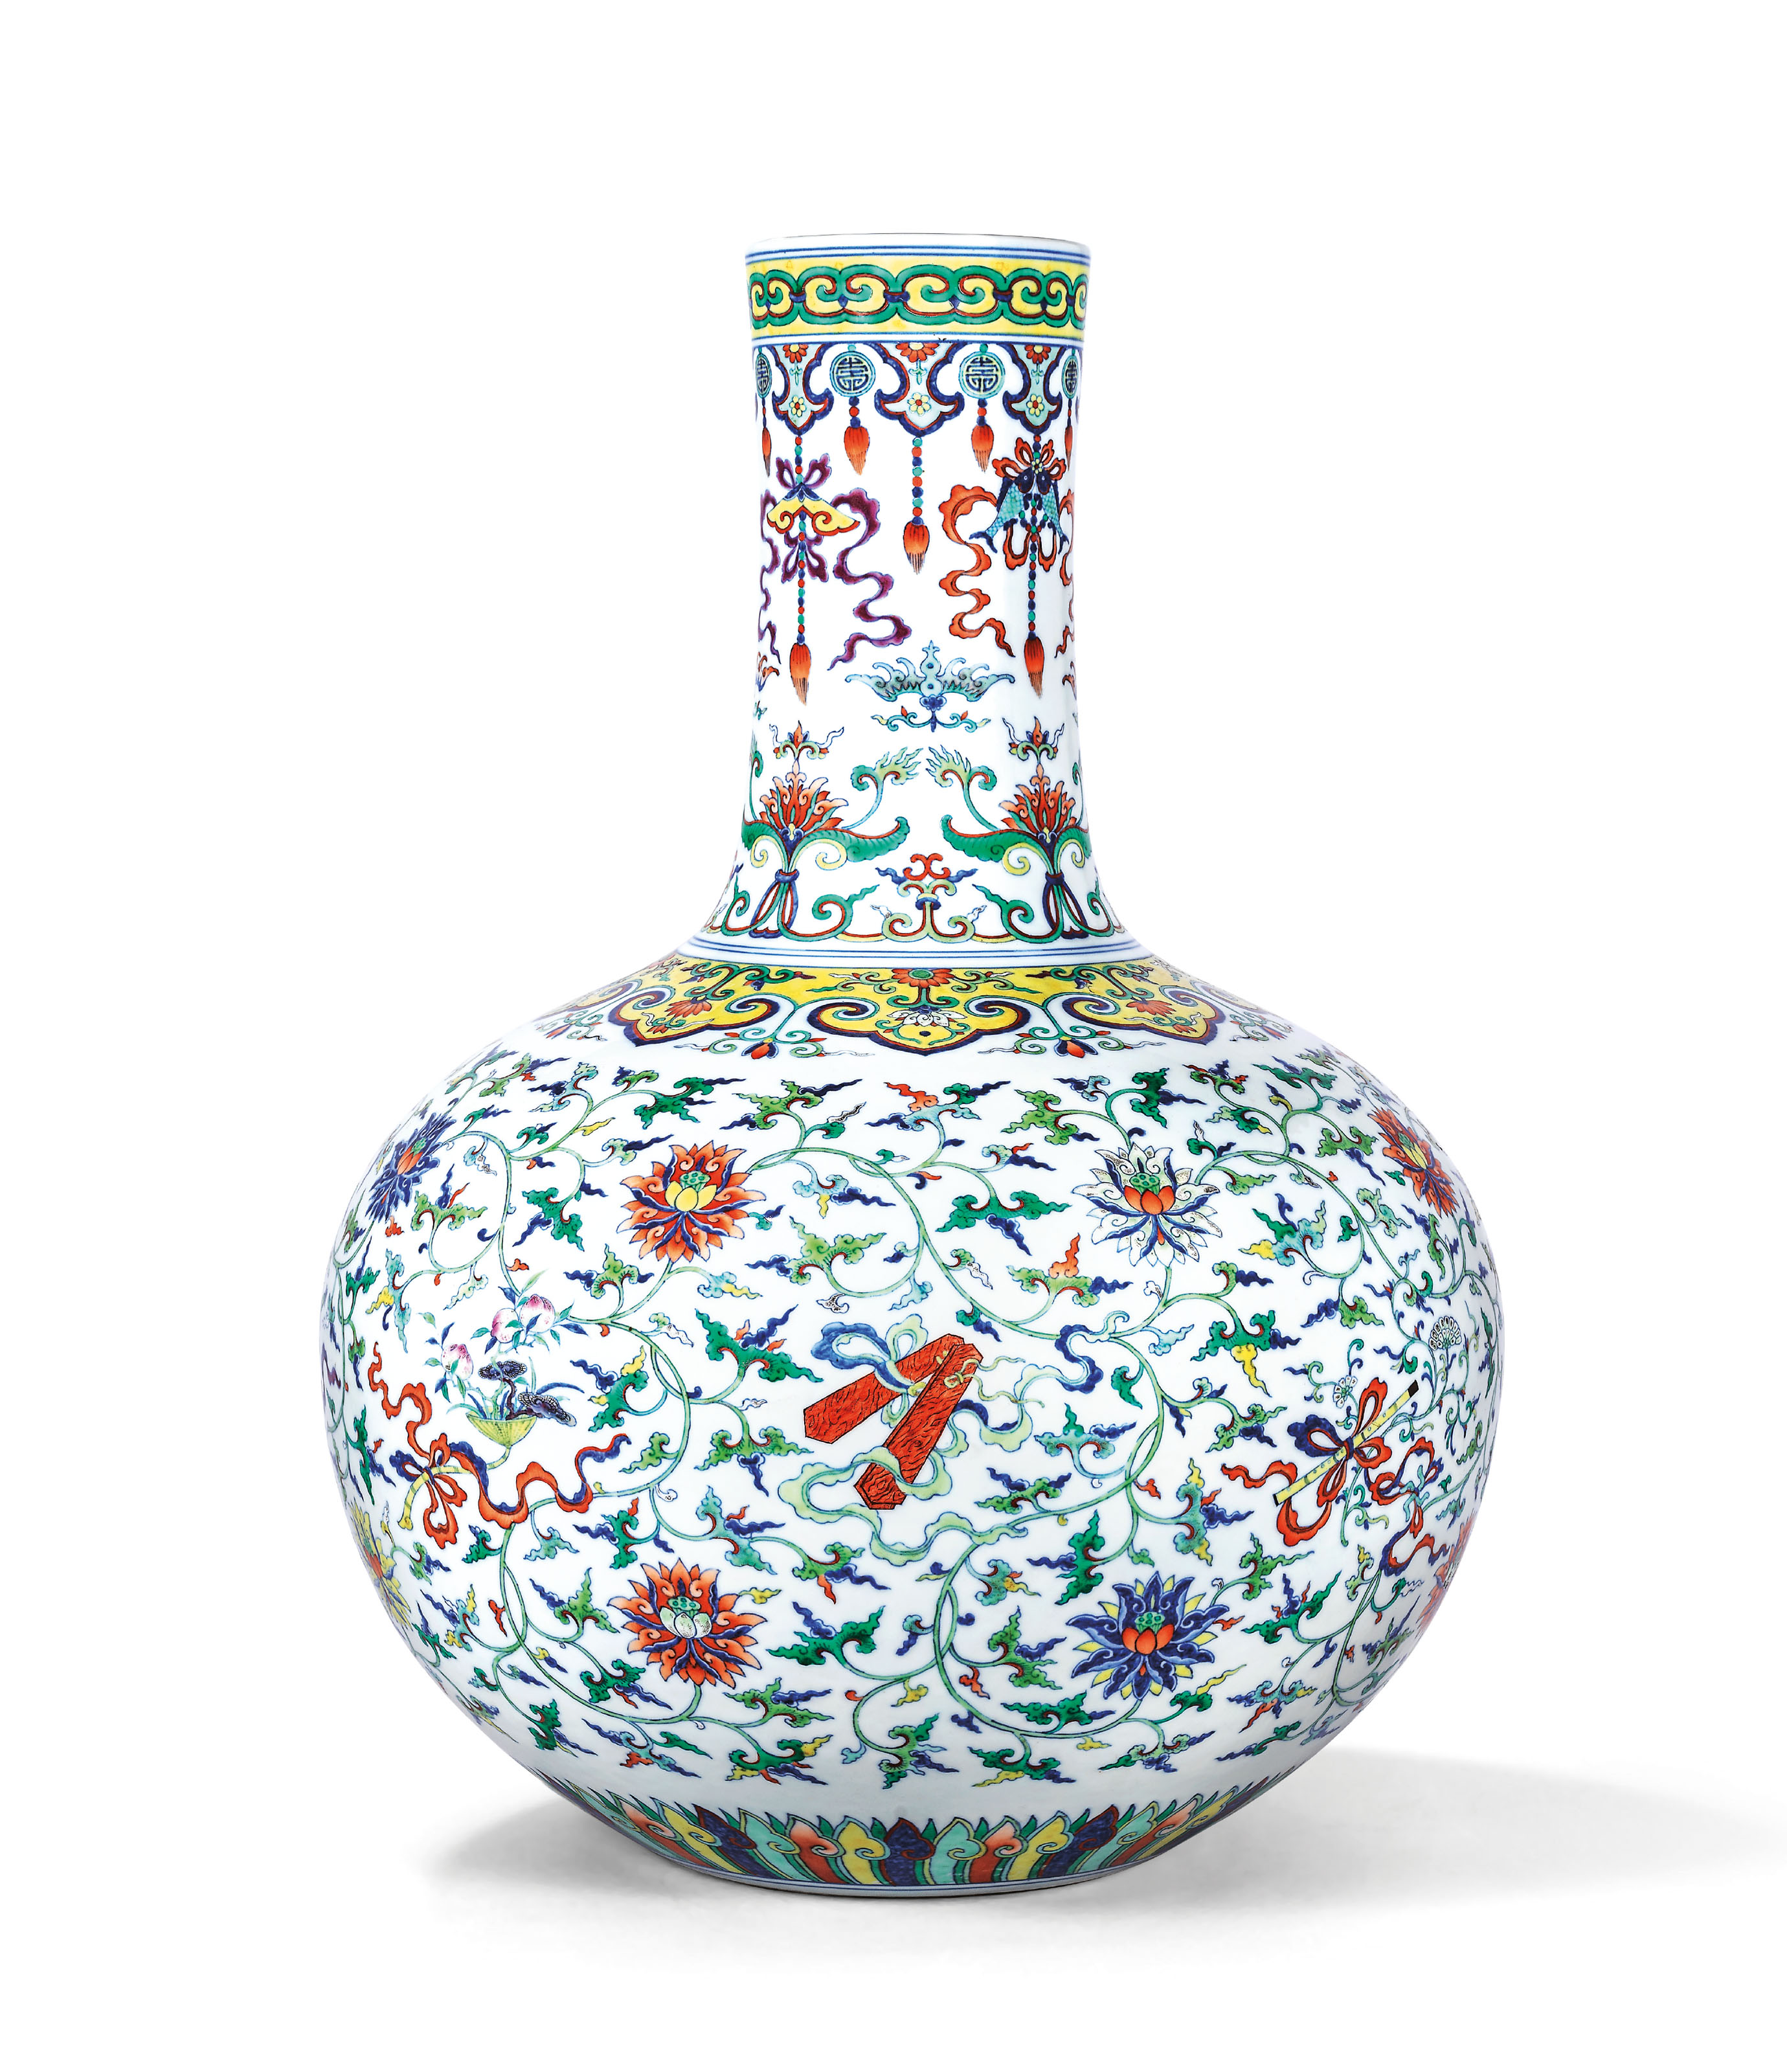 A FINE MAGNIFICENT AND EXTREMELY RARE DOUCAI AND FAMILLE ROSE 'ANBAXIAN' VASE, TIANQIUPING